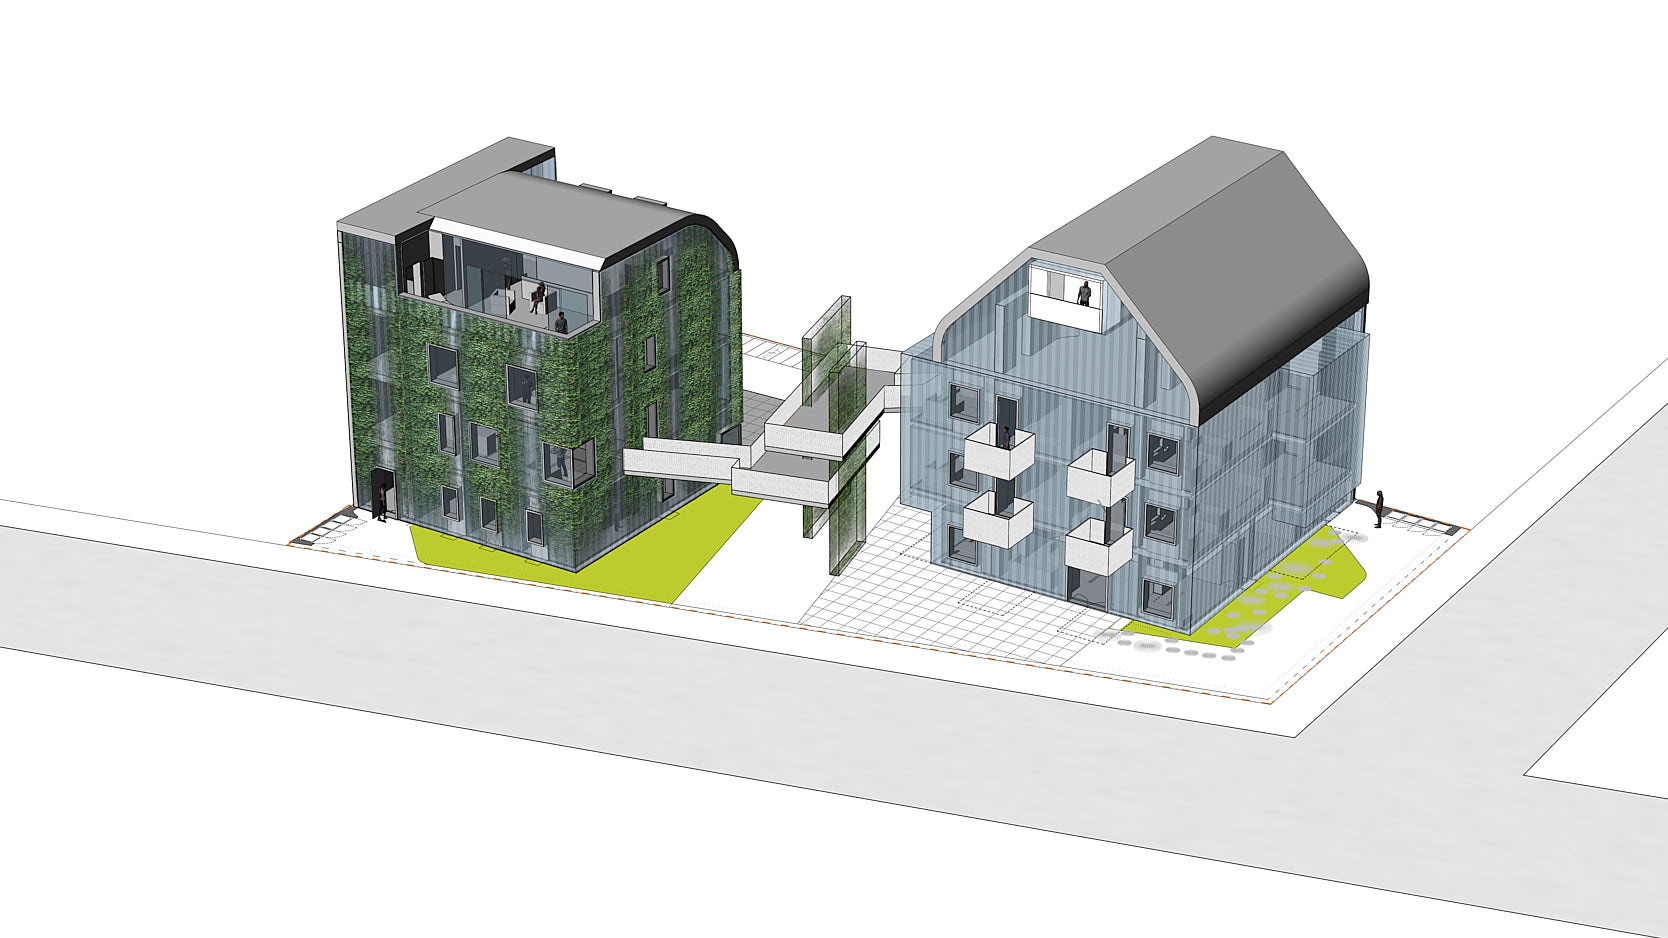 Khek, Development Study Housing: Model